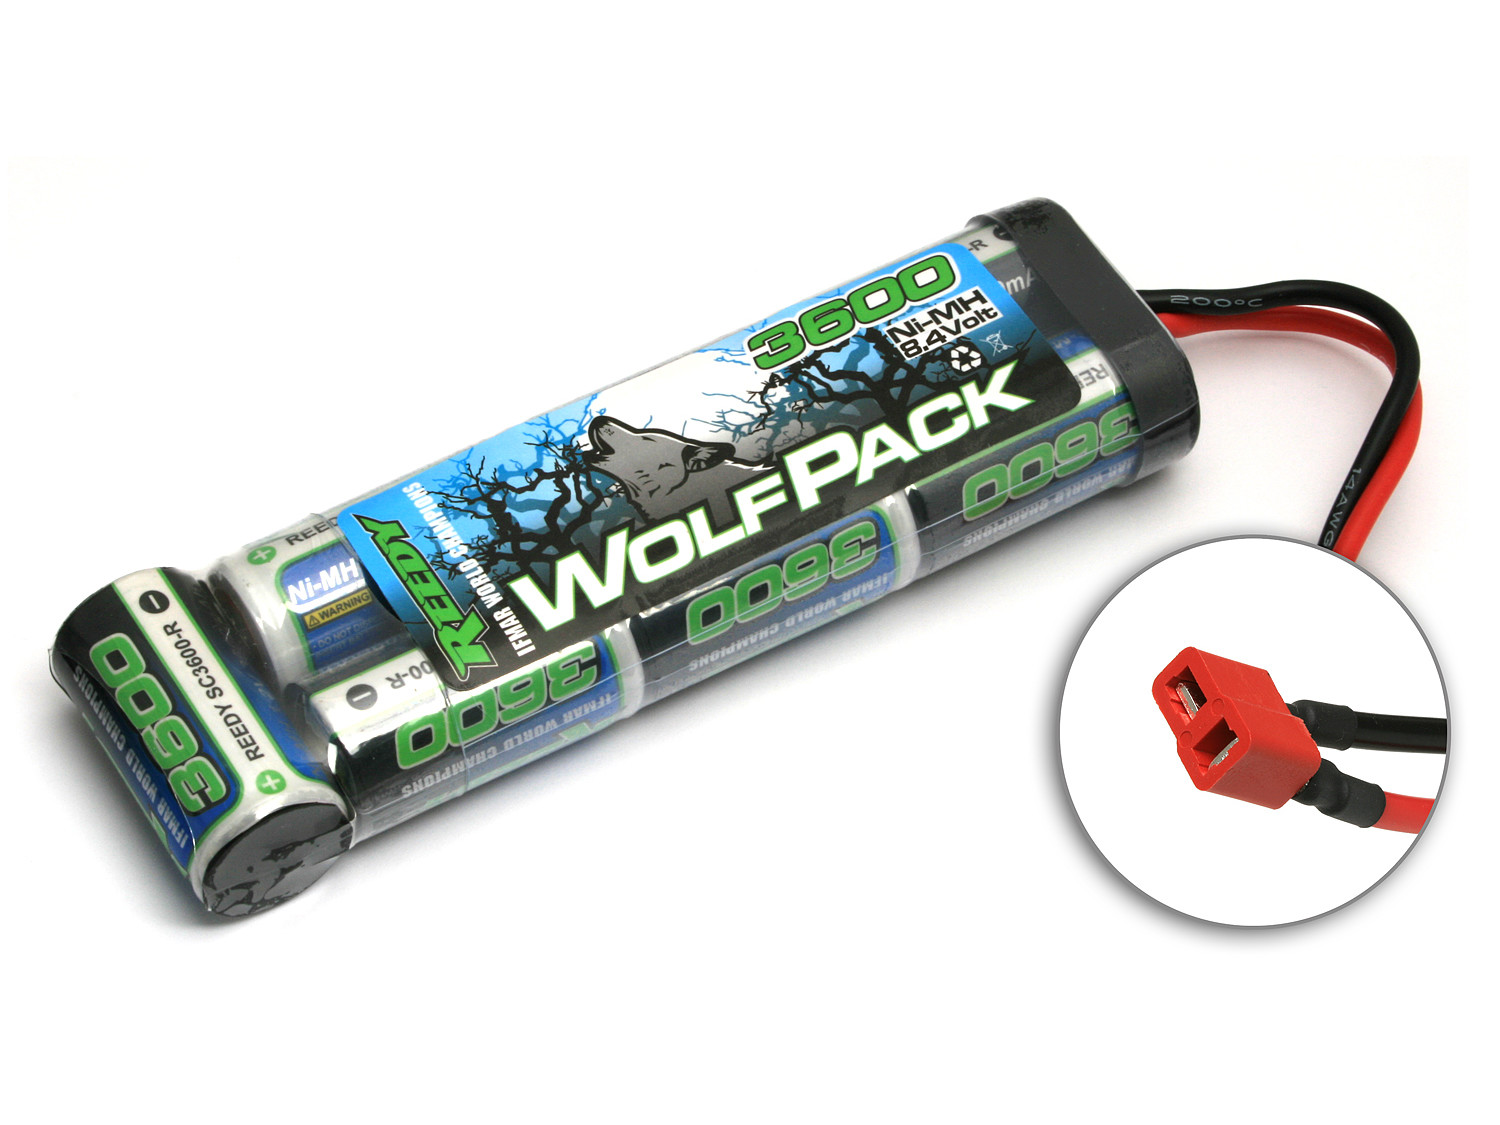 Detail Produit Reedy 725 WolfPack NiMH 3600mAh 8.4V w/ High Power Connector